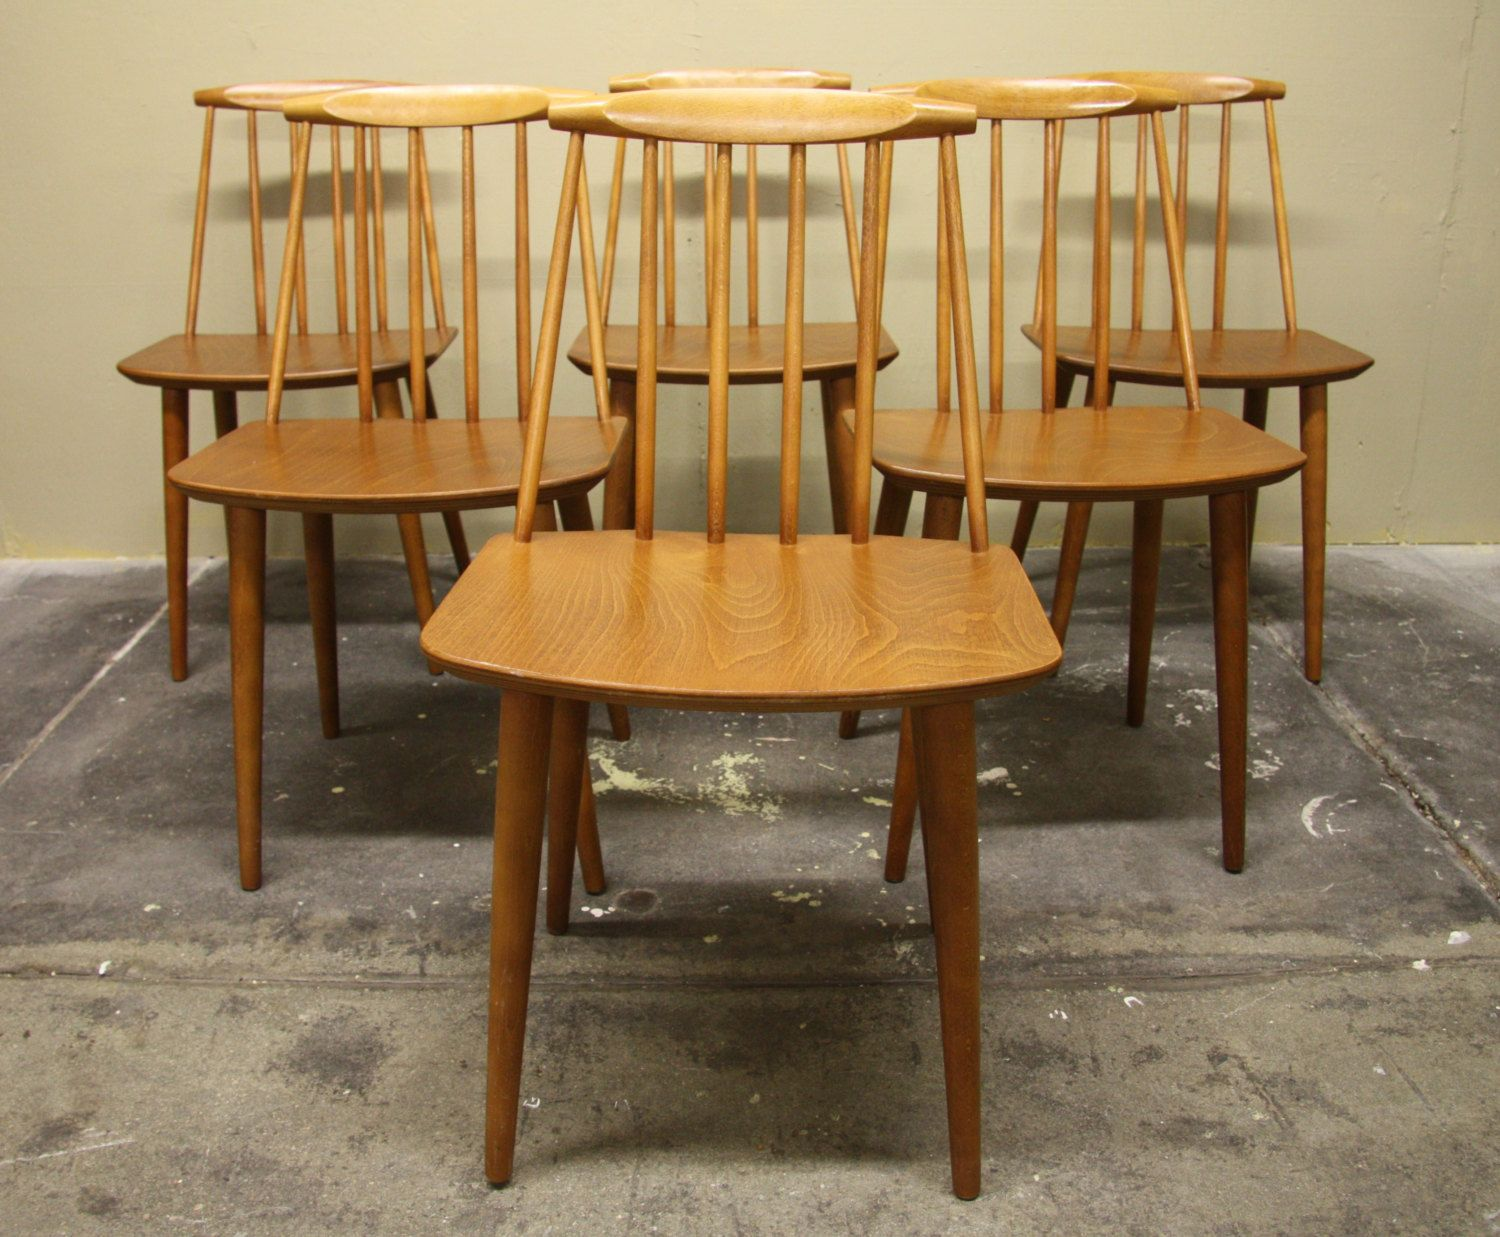 80fcdcba047a2 Danish Mobler Folke Palsson Spindle Back Chairs Set of 6 by  WrightFindsinMCM on Etsy